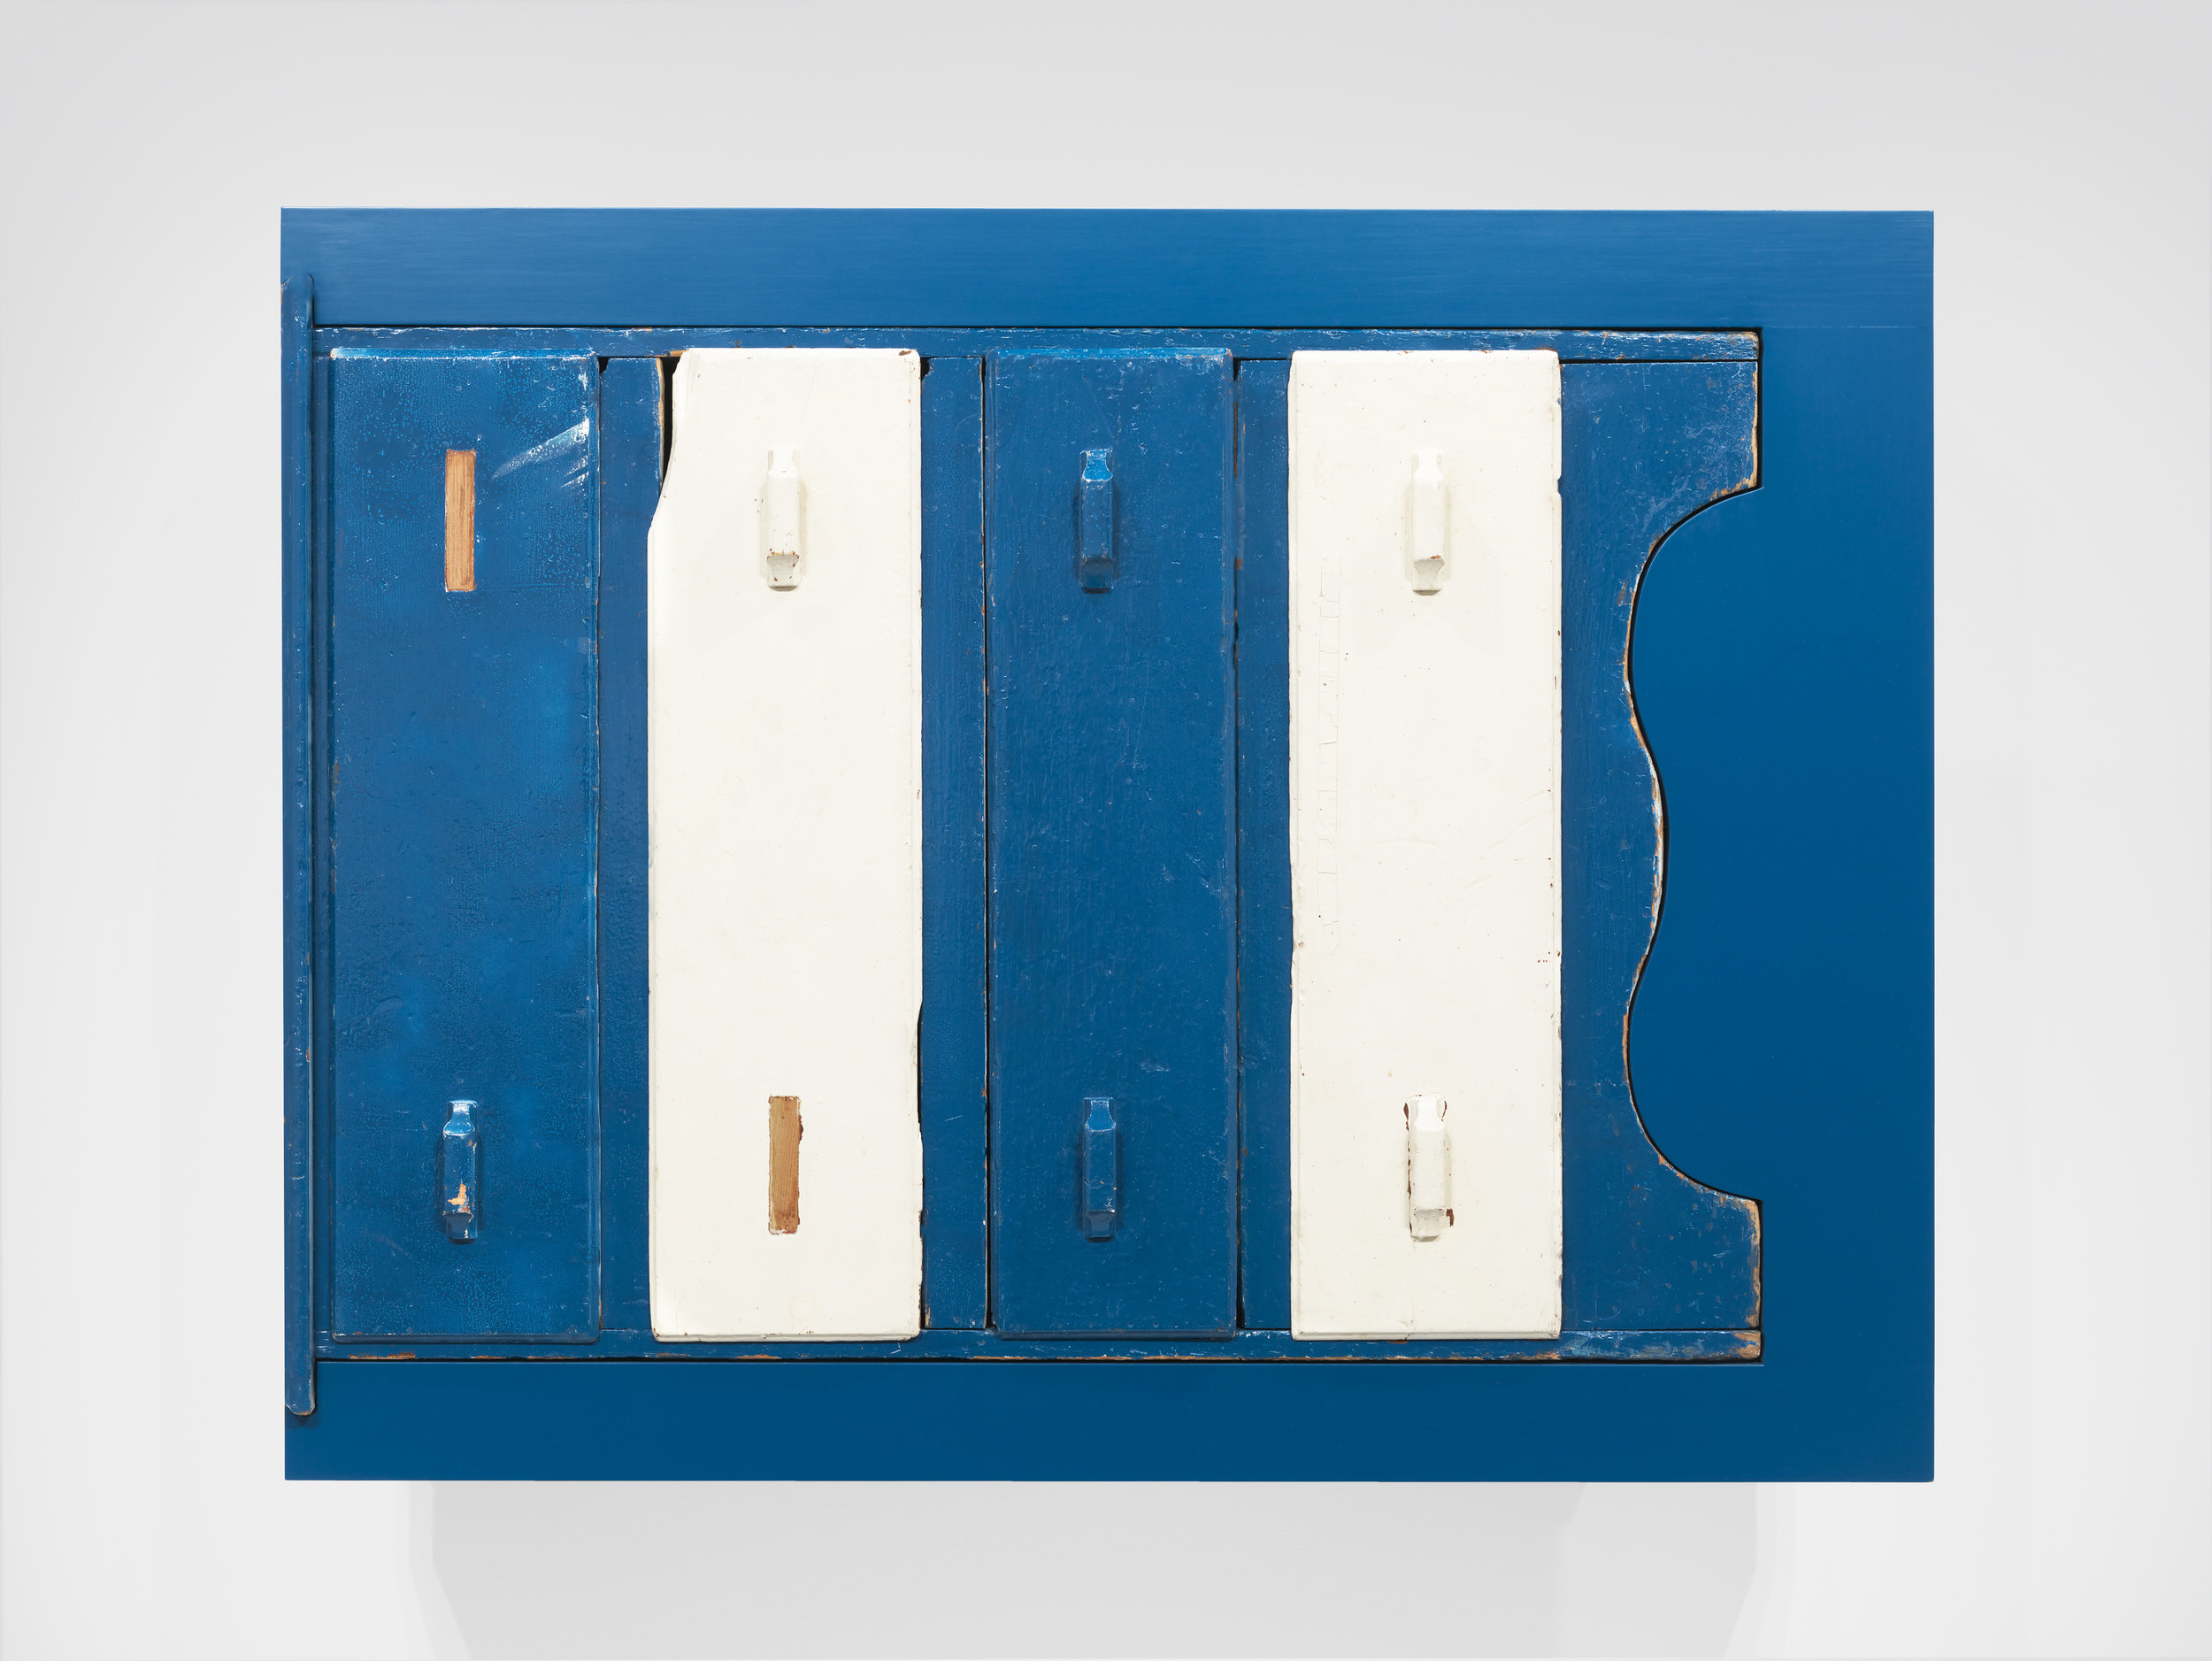 Untitled (found blue chest), 2011